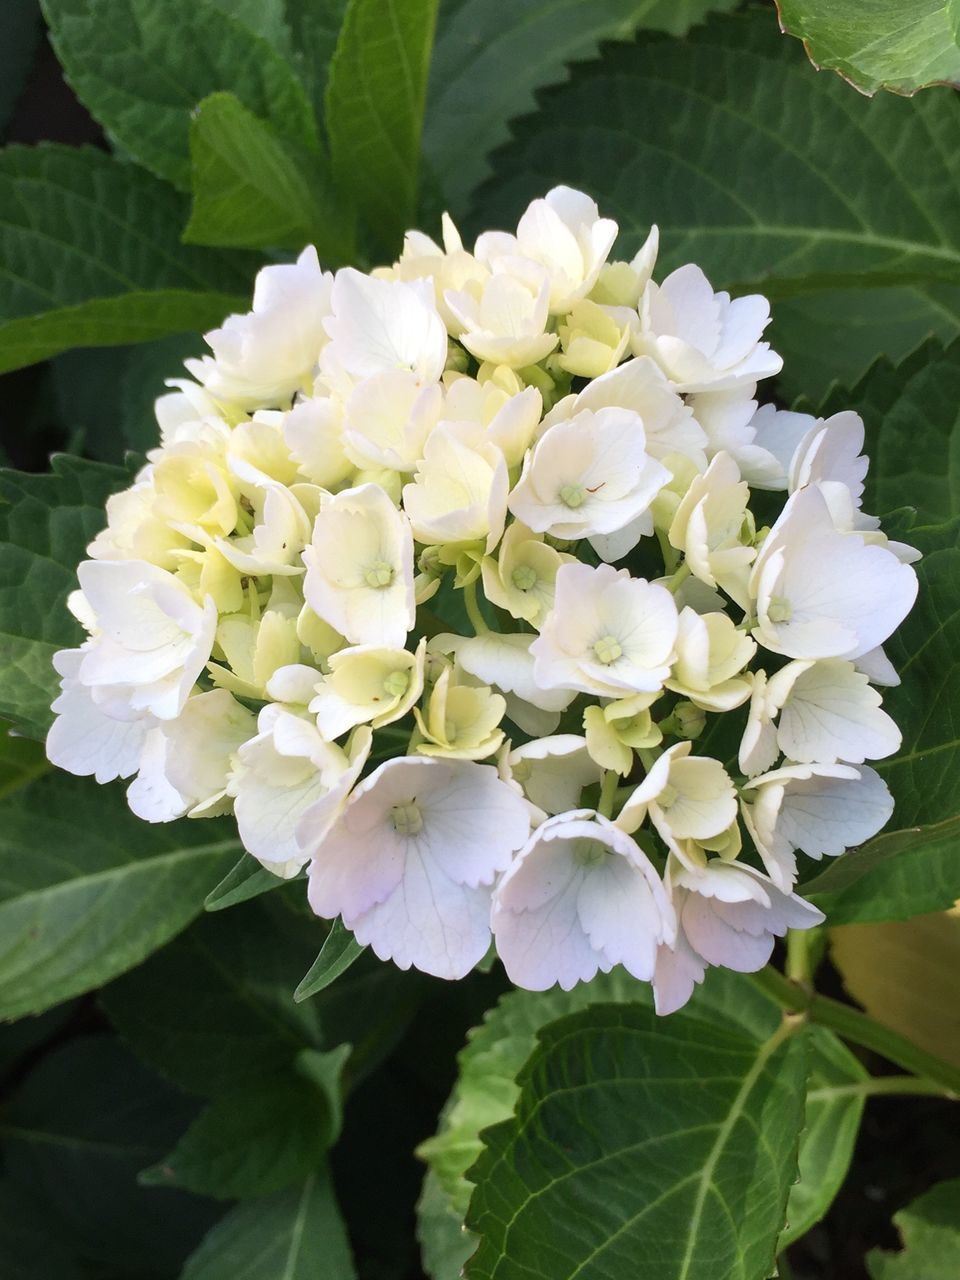 flower, petal, beauty in nature, nature, plant, growth, fragility, leaf, white color, freshness, blooming, close-up, no people, flower head, hydrangea, day, outdoors